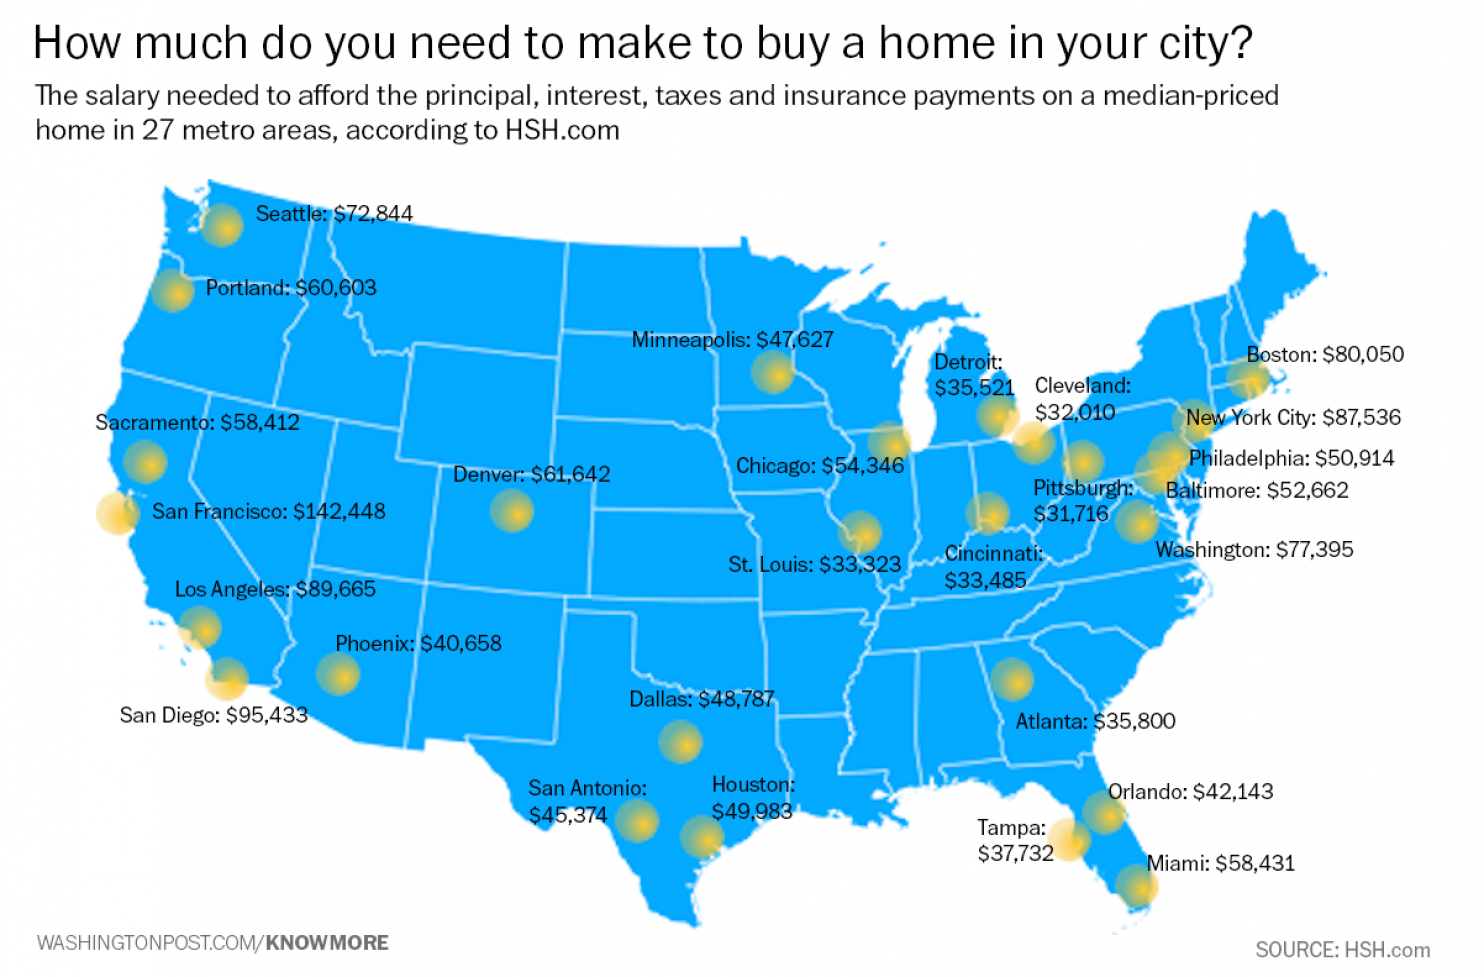 San Francisco Was By Far The Most Expensive City To Buy A House By Far,  Where The Site Estimates You Would Need To Make $142,448 To Buy The Median  Home In